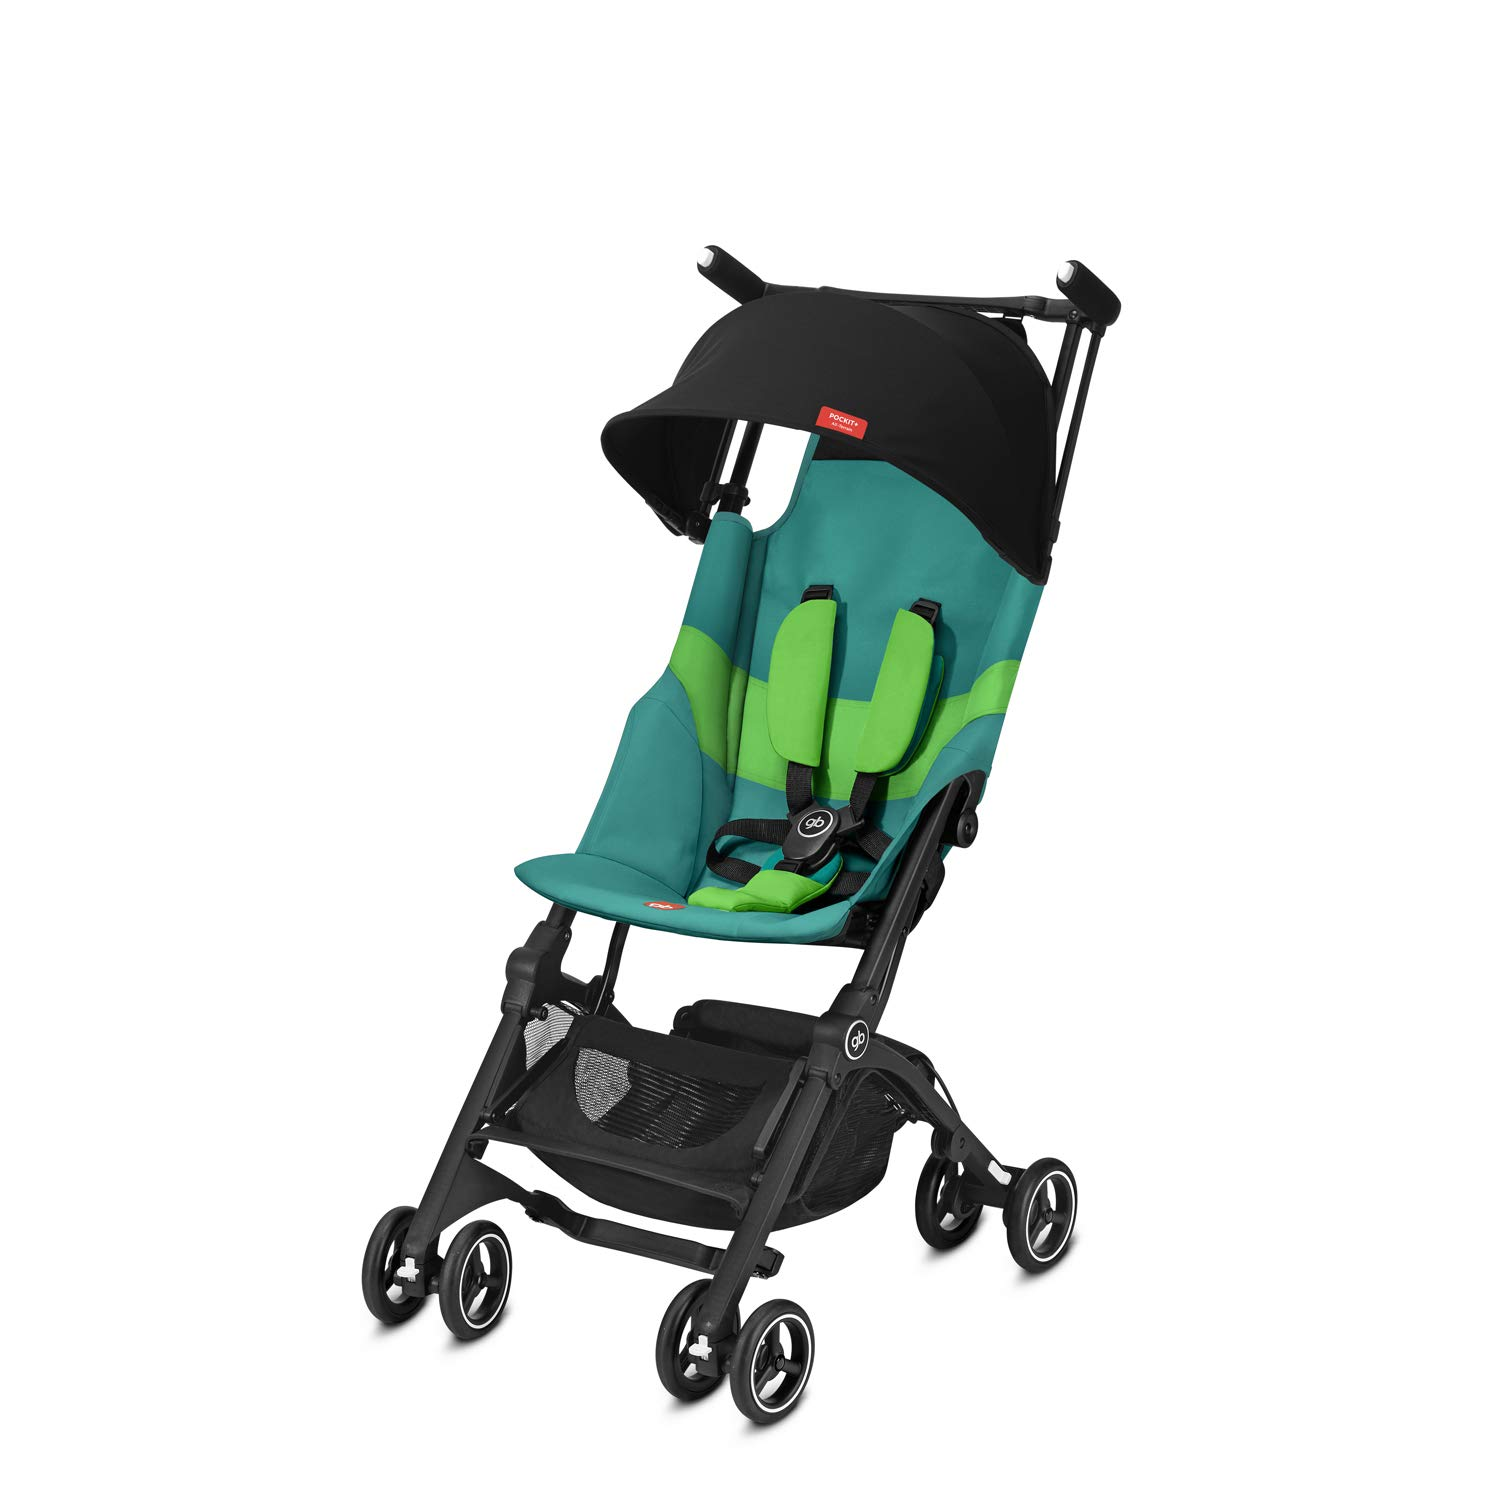 gb Gold Pockit+ All Terrain Ultra Compact Pushchair Cabin Luggage Compliant Night Blue From 6 Months to 17 kg approx. 4 Years